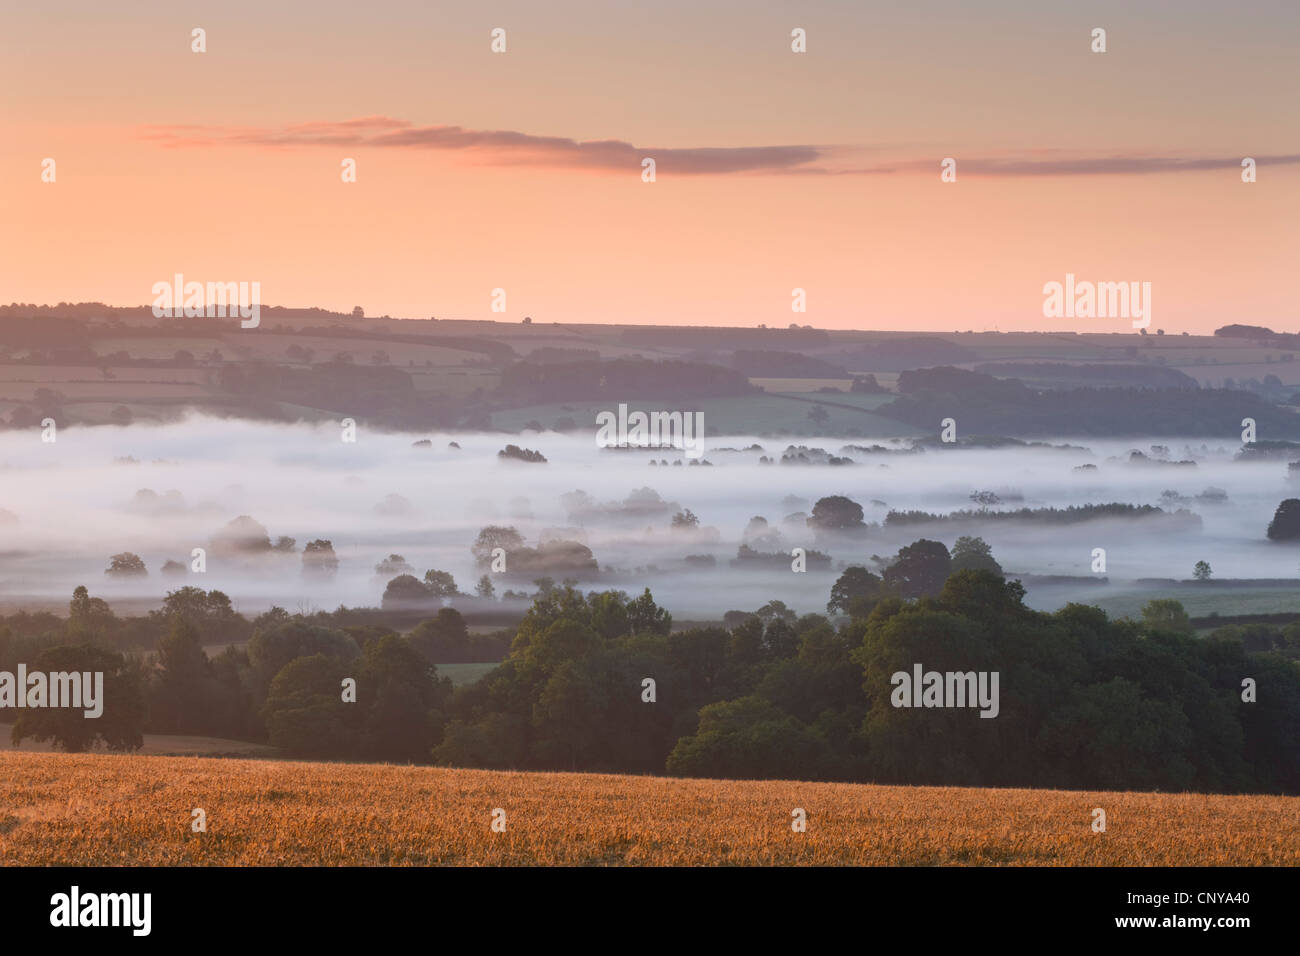 Mist covered Cotswolds countryside near Bourton on the Water, Gloucestershire, England. Summer 2011 - Stock Image